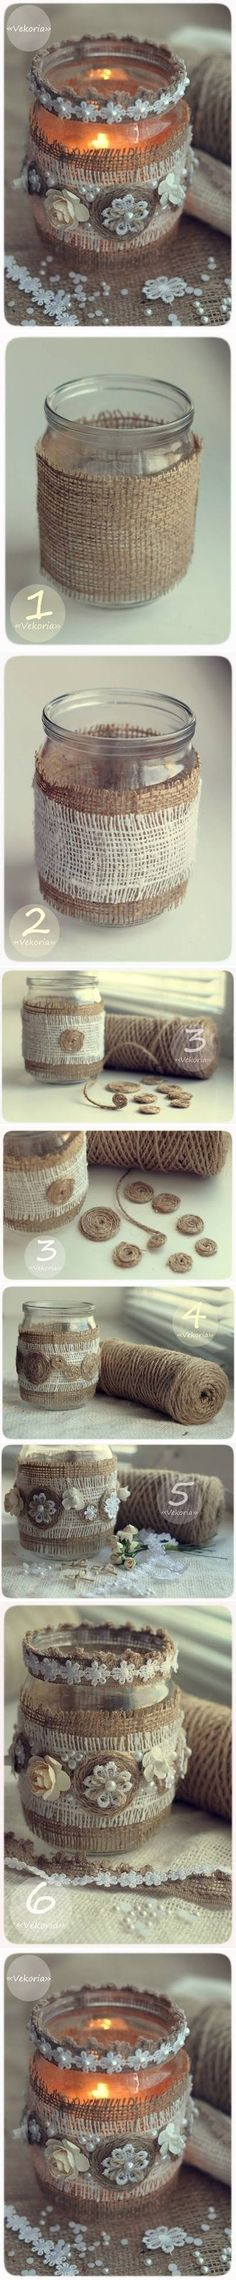 Vintage Candle Holder  diy easy crafts diy ideas